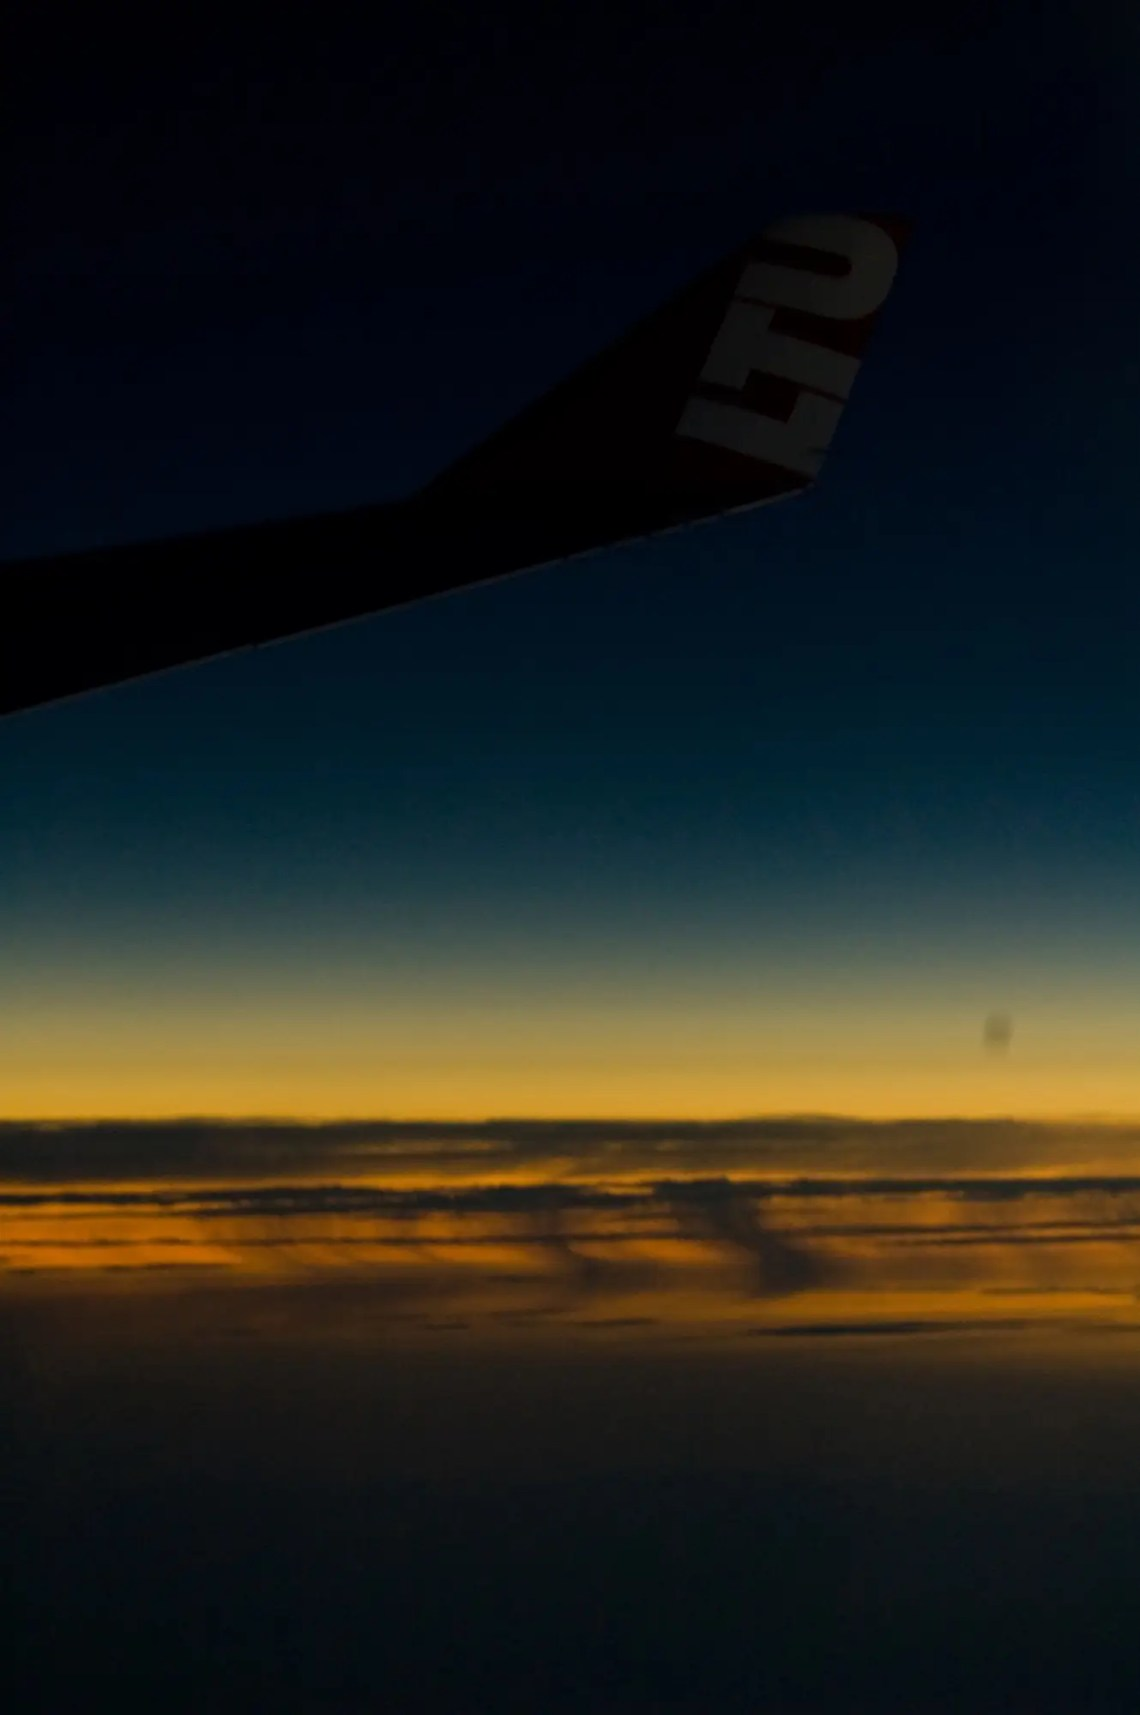 Depending on where you are during totality, it could look like the twilight that comes right after the sunset, or it might get so dark you're not able to read. But it won't be exactly like nighttime, according to Littman and Espenek. Here's what Business Insider's Dave Mosher saw on a flight through a solar eclipse in 2008: